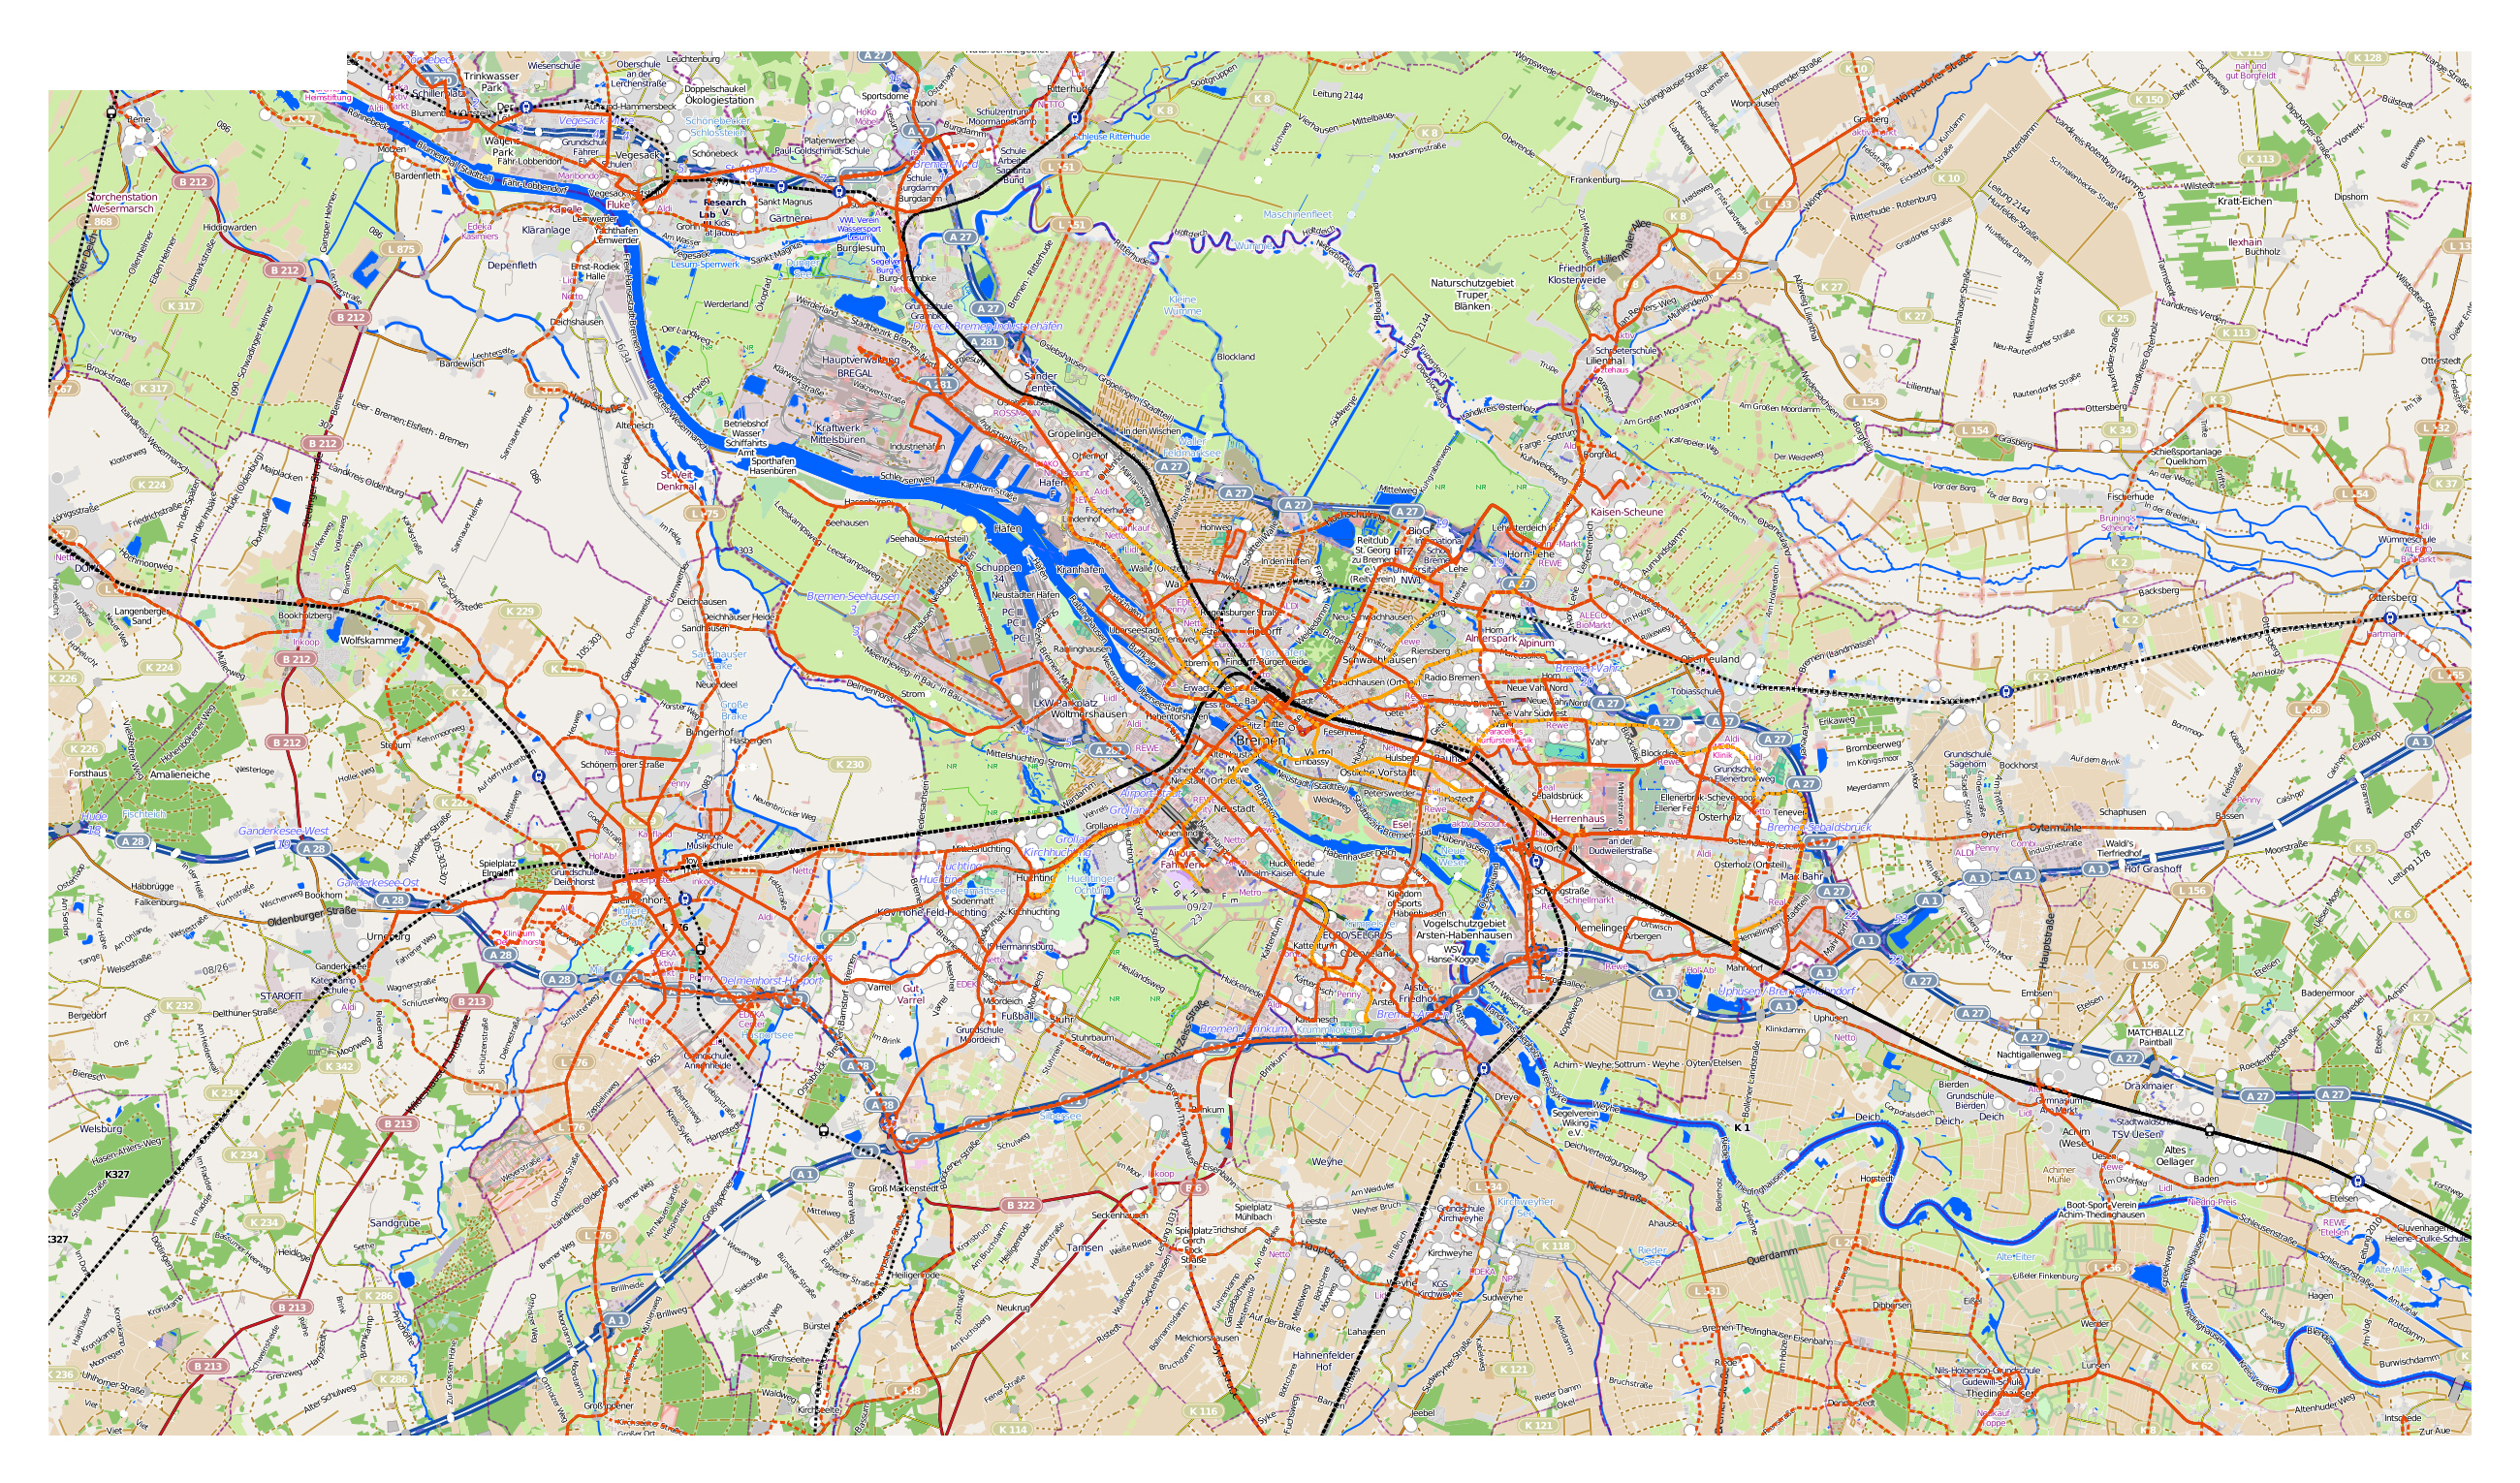 Map Of Bremen Germany.Large Map Of Bremen City And Its Surroundings Bremen Germany